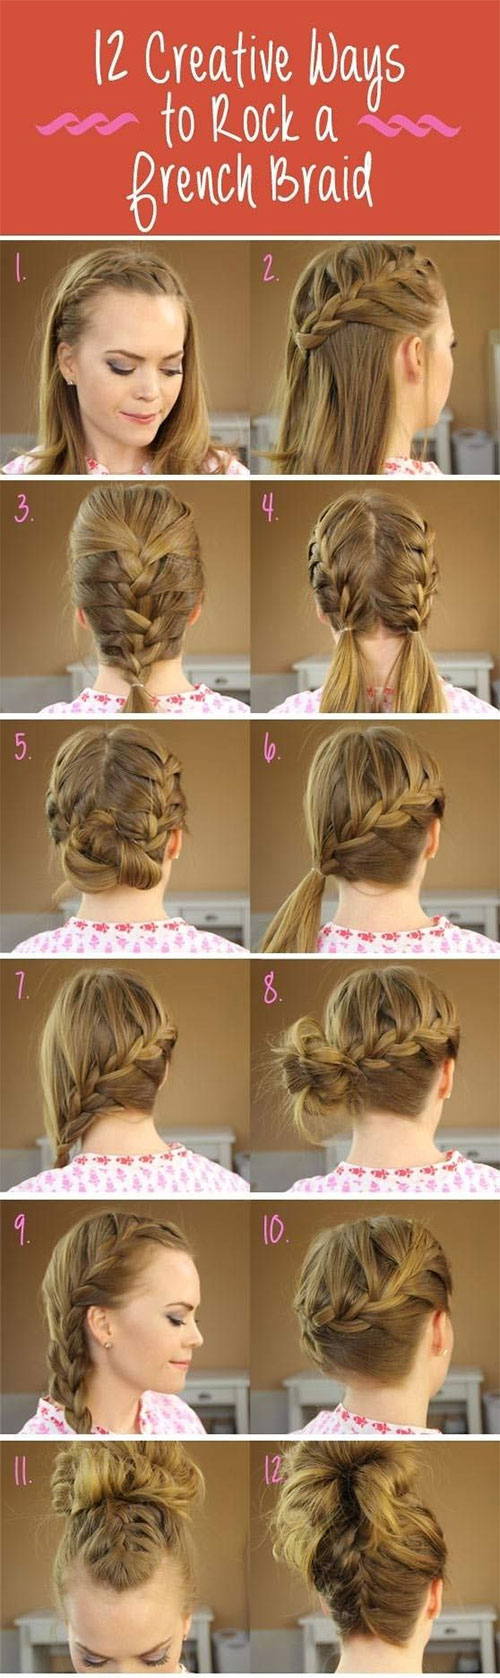 15-Step-By-Step-Summer-Hairstyle-Tutorials-For-Beginners-Learners-2015-9